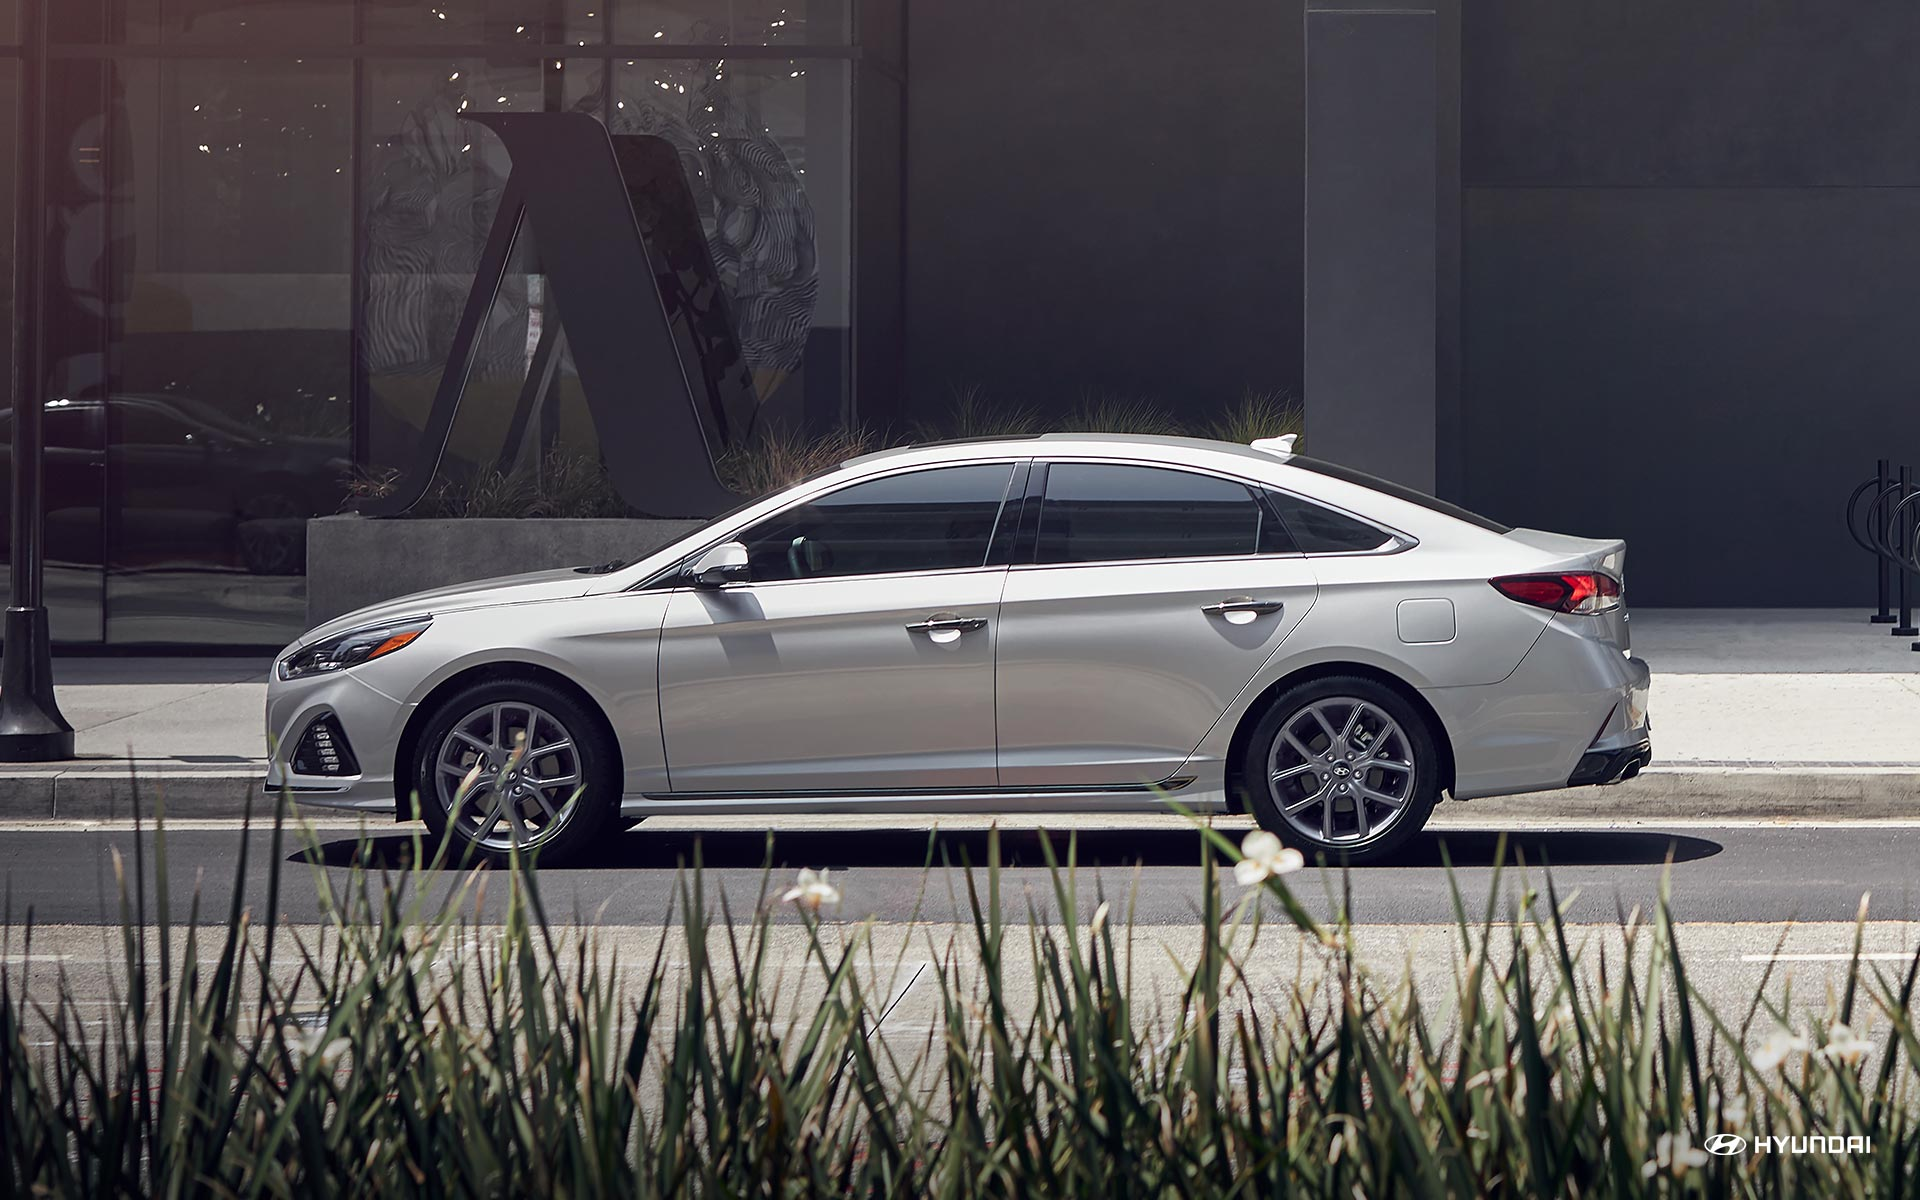 h accent hyundai s affected news u indianapolis sonata recalled vehicles